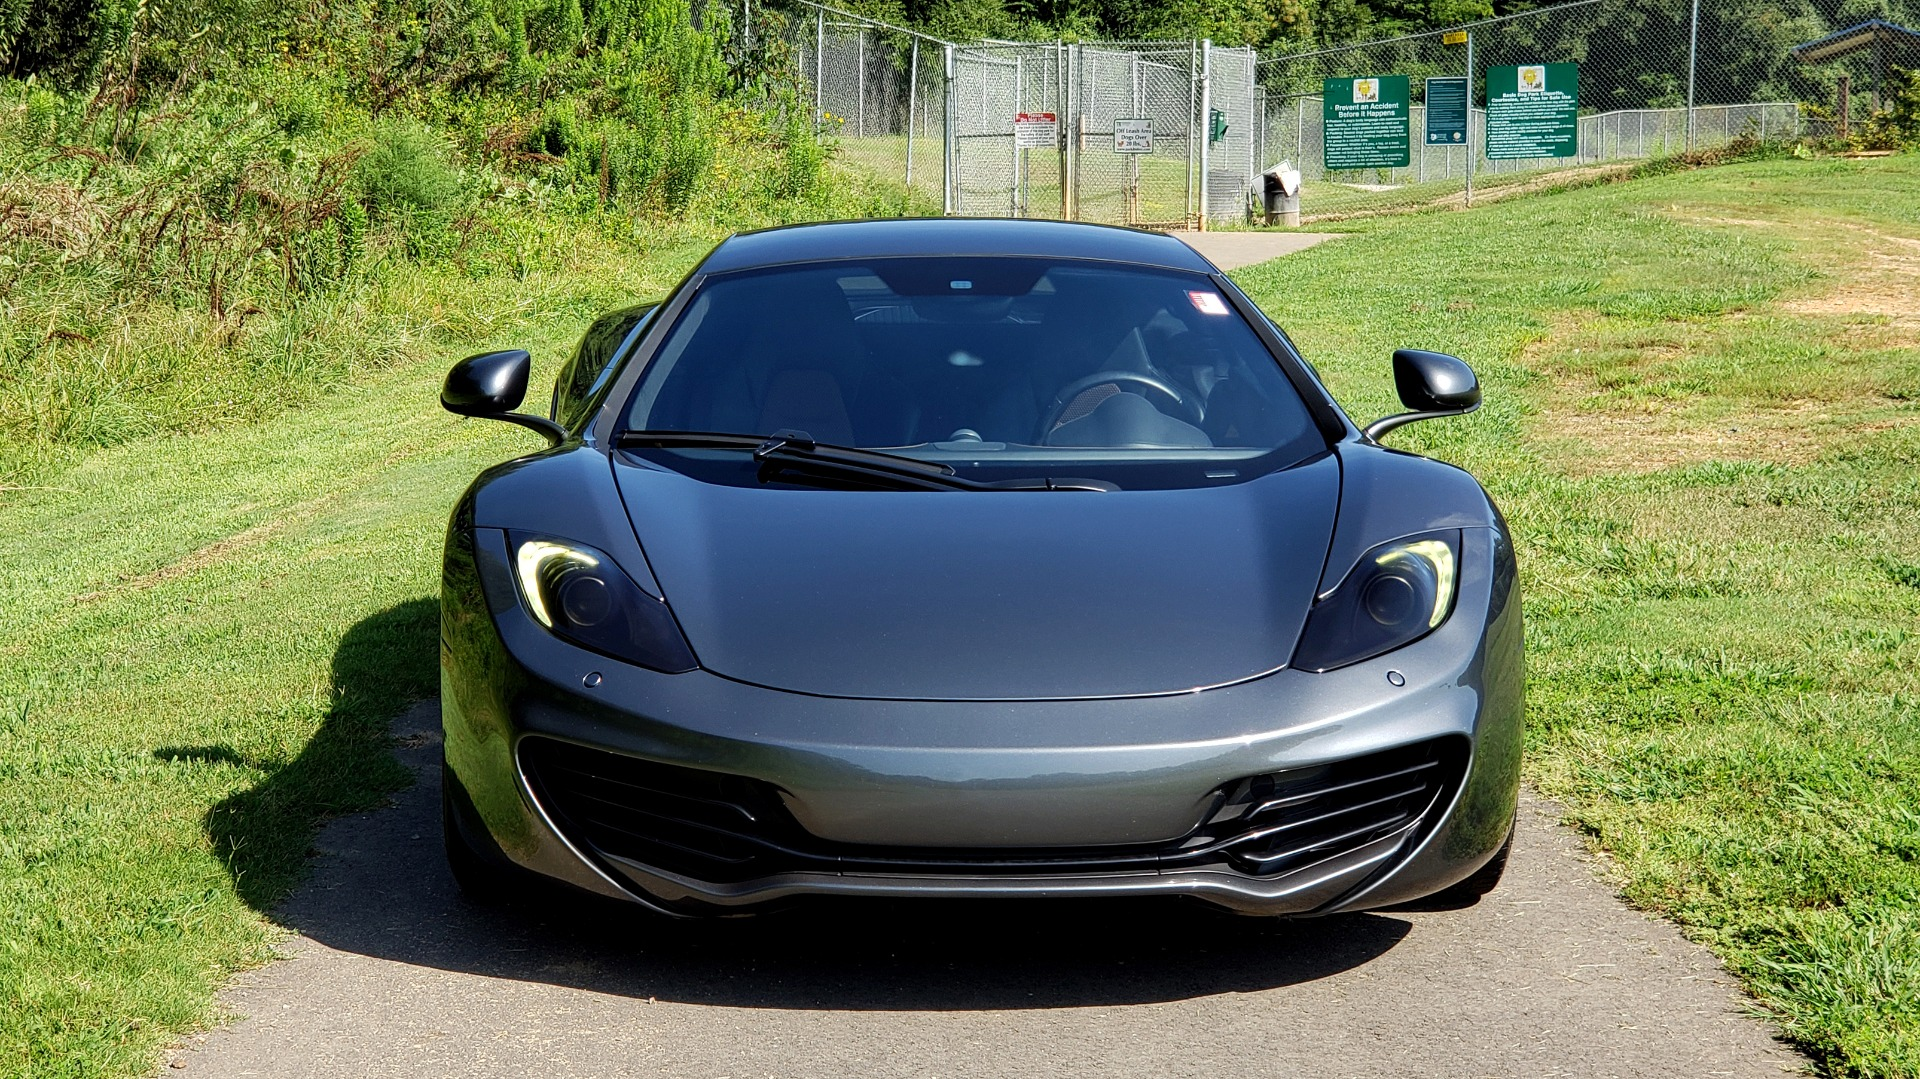 Used 2012 McLaren MP4-12C COUPE / 3.8 L V8 592HP / AUTO / NAV / CCB / LOW MILES for sale $97,999 at Formula Imports in Charlotte NC 28227 12